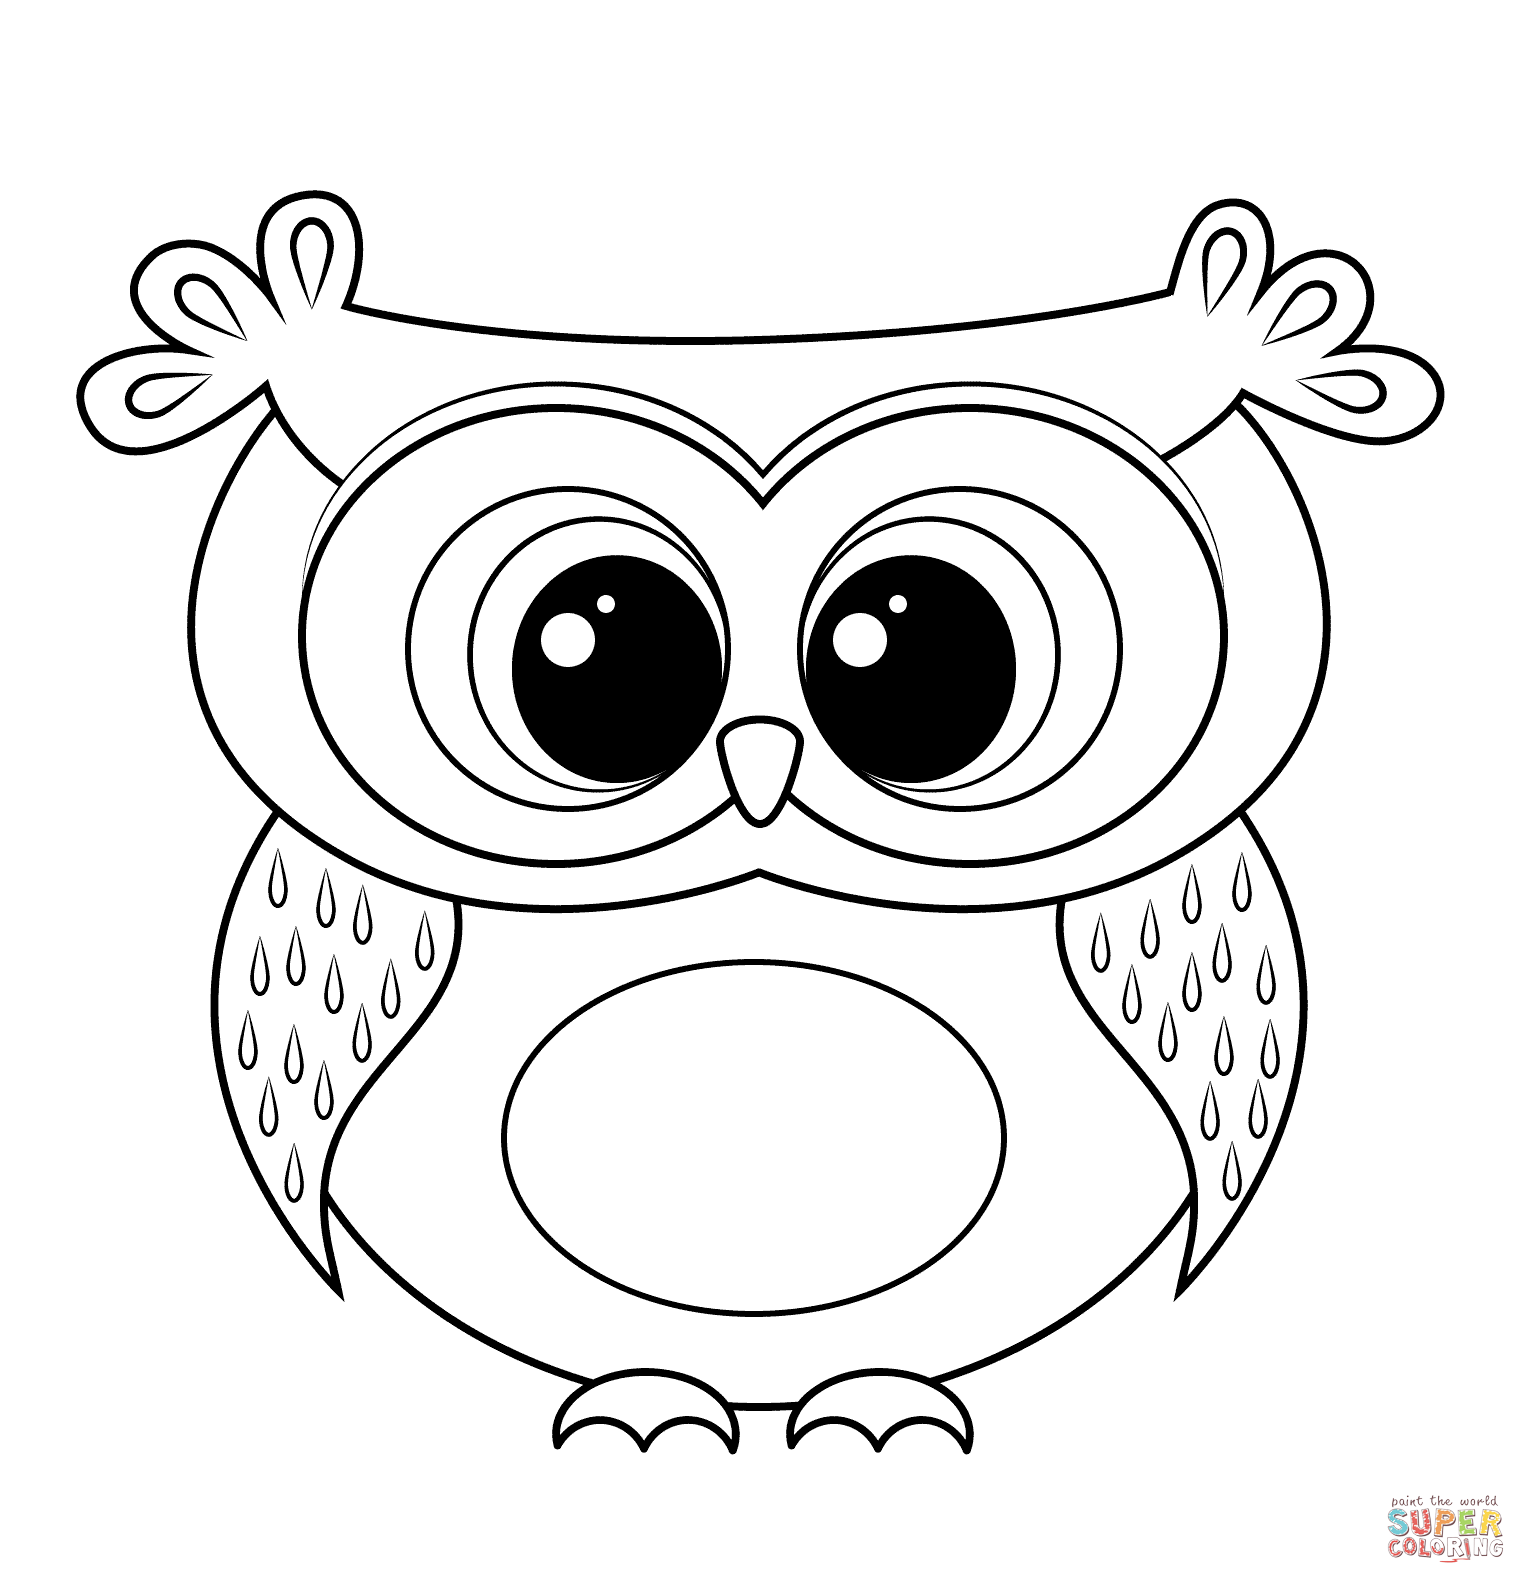 1526x1584 Cartoon Owl Coloring Page Free Printable Pages